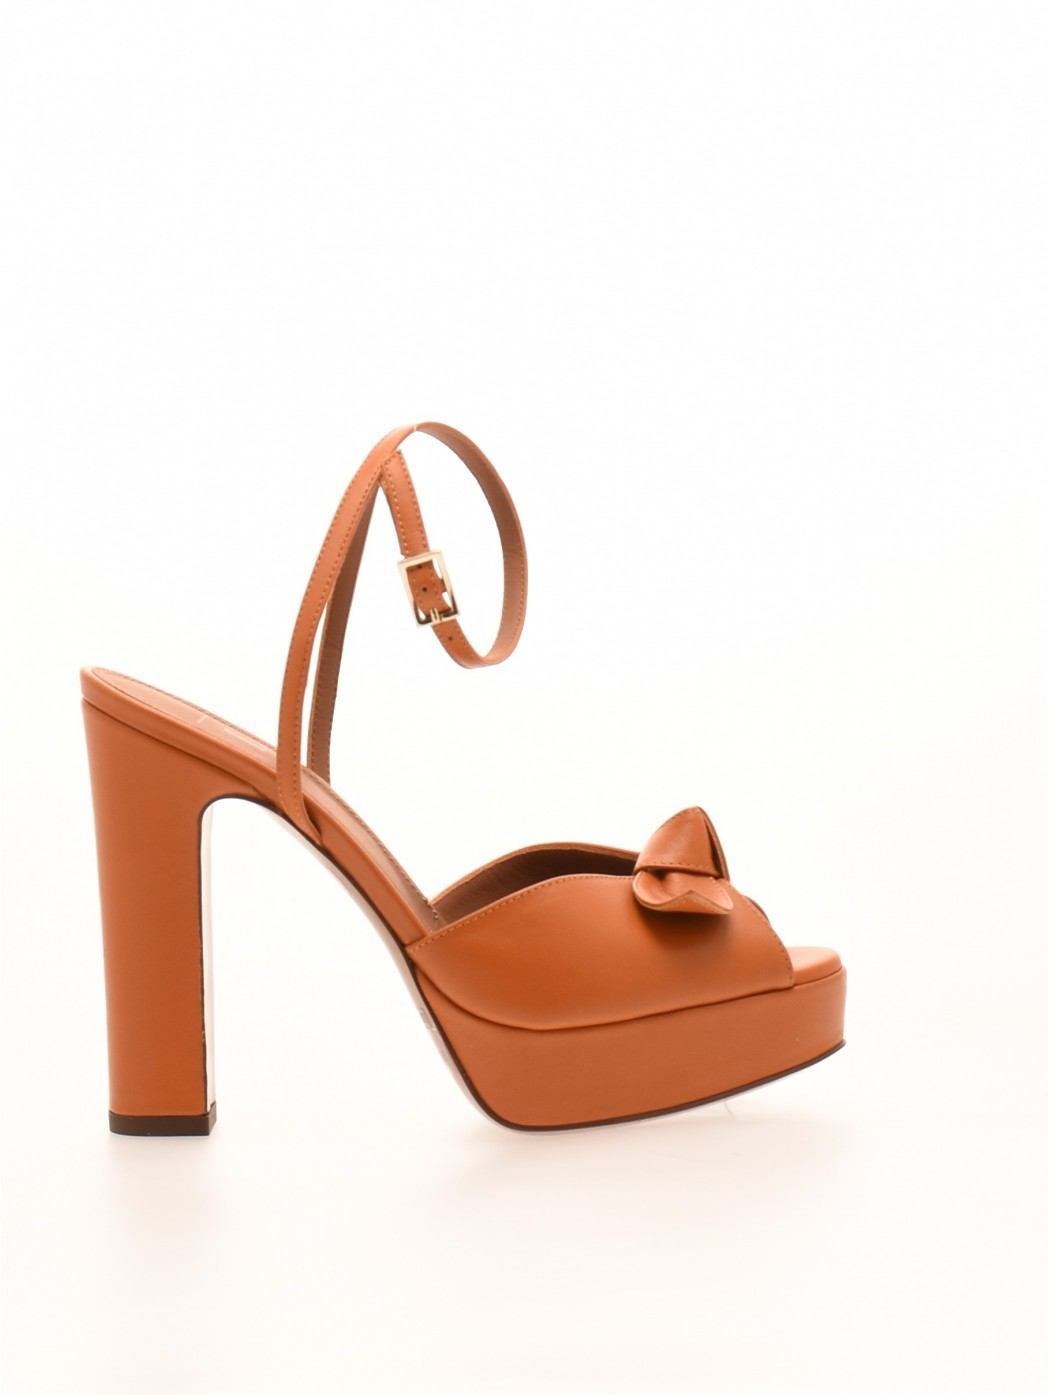 HELL NAPPA LUX RUST LAUTRECHOSE LDN08212CP2615 5027